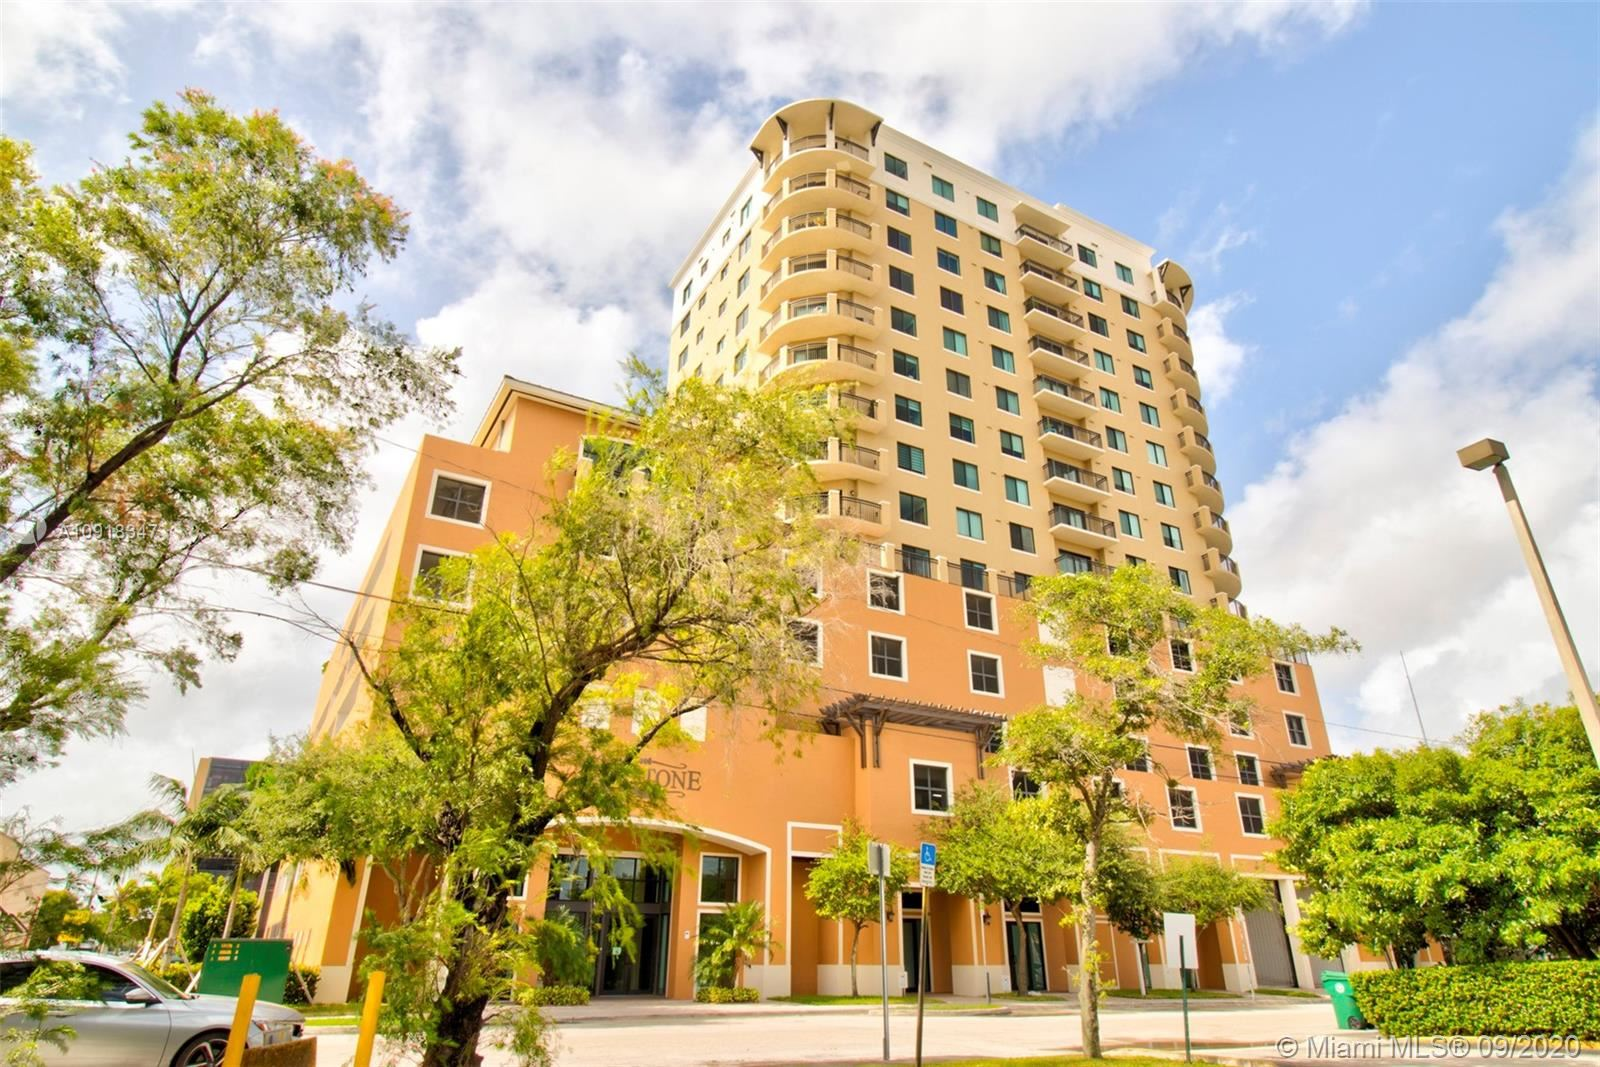 4242 NW 2nd St #1414, Miami, FL 33126 - #: A10918347